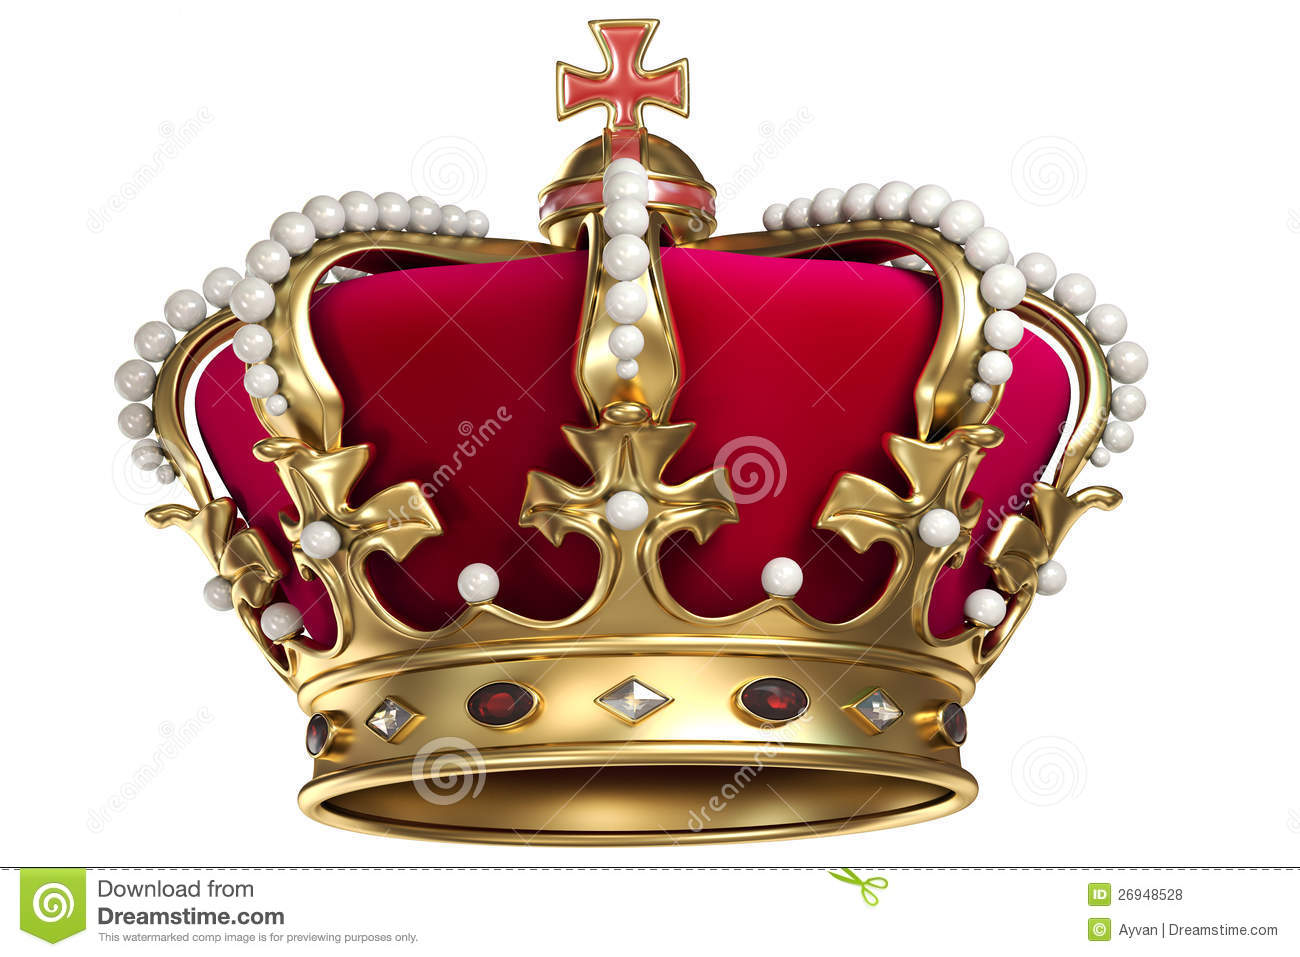 Gold Crown With Gems Royalty Free Stock Photos - Image: 26948528